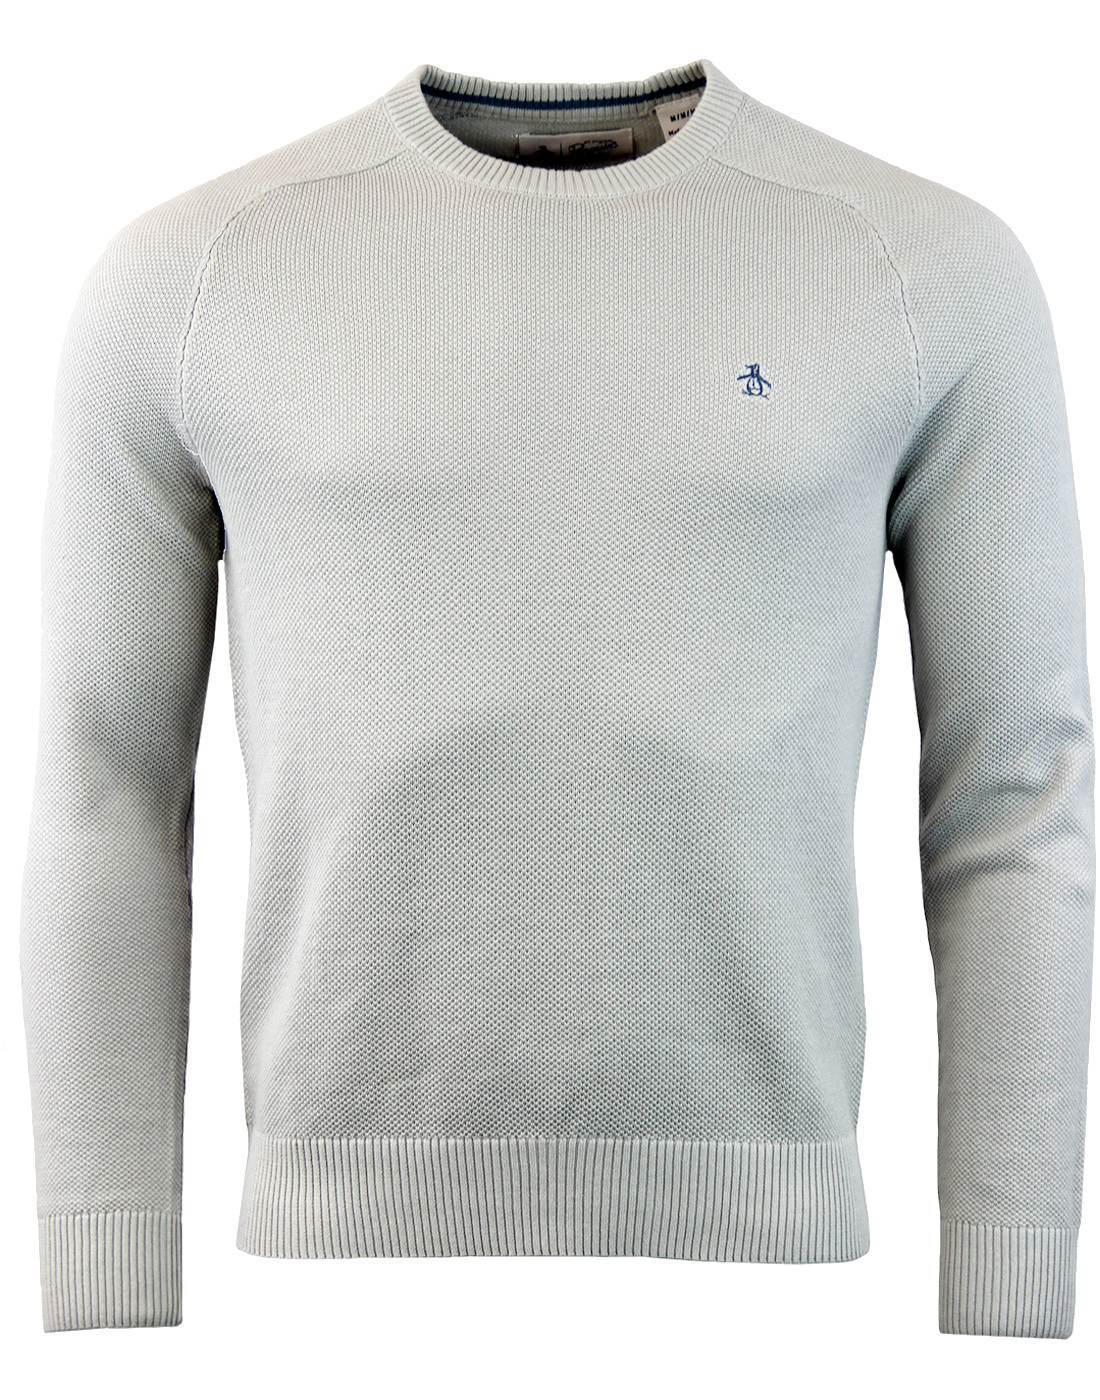 ORIGINAL PENGUIN Retro Honeycomb Pique Knit Jumper